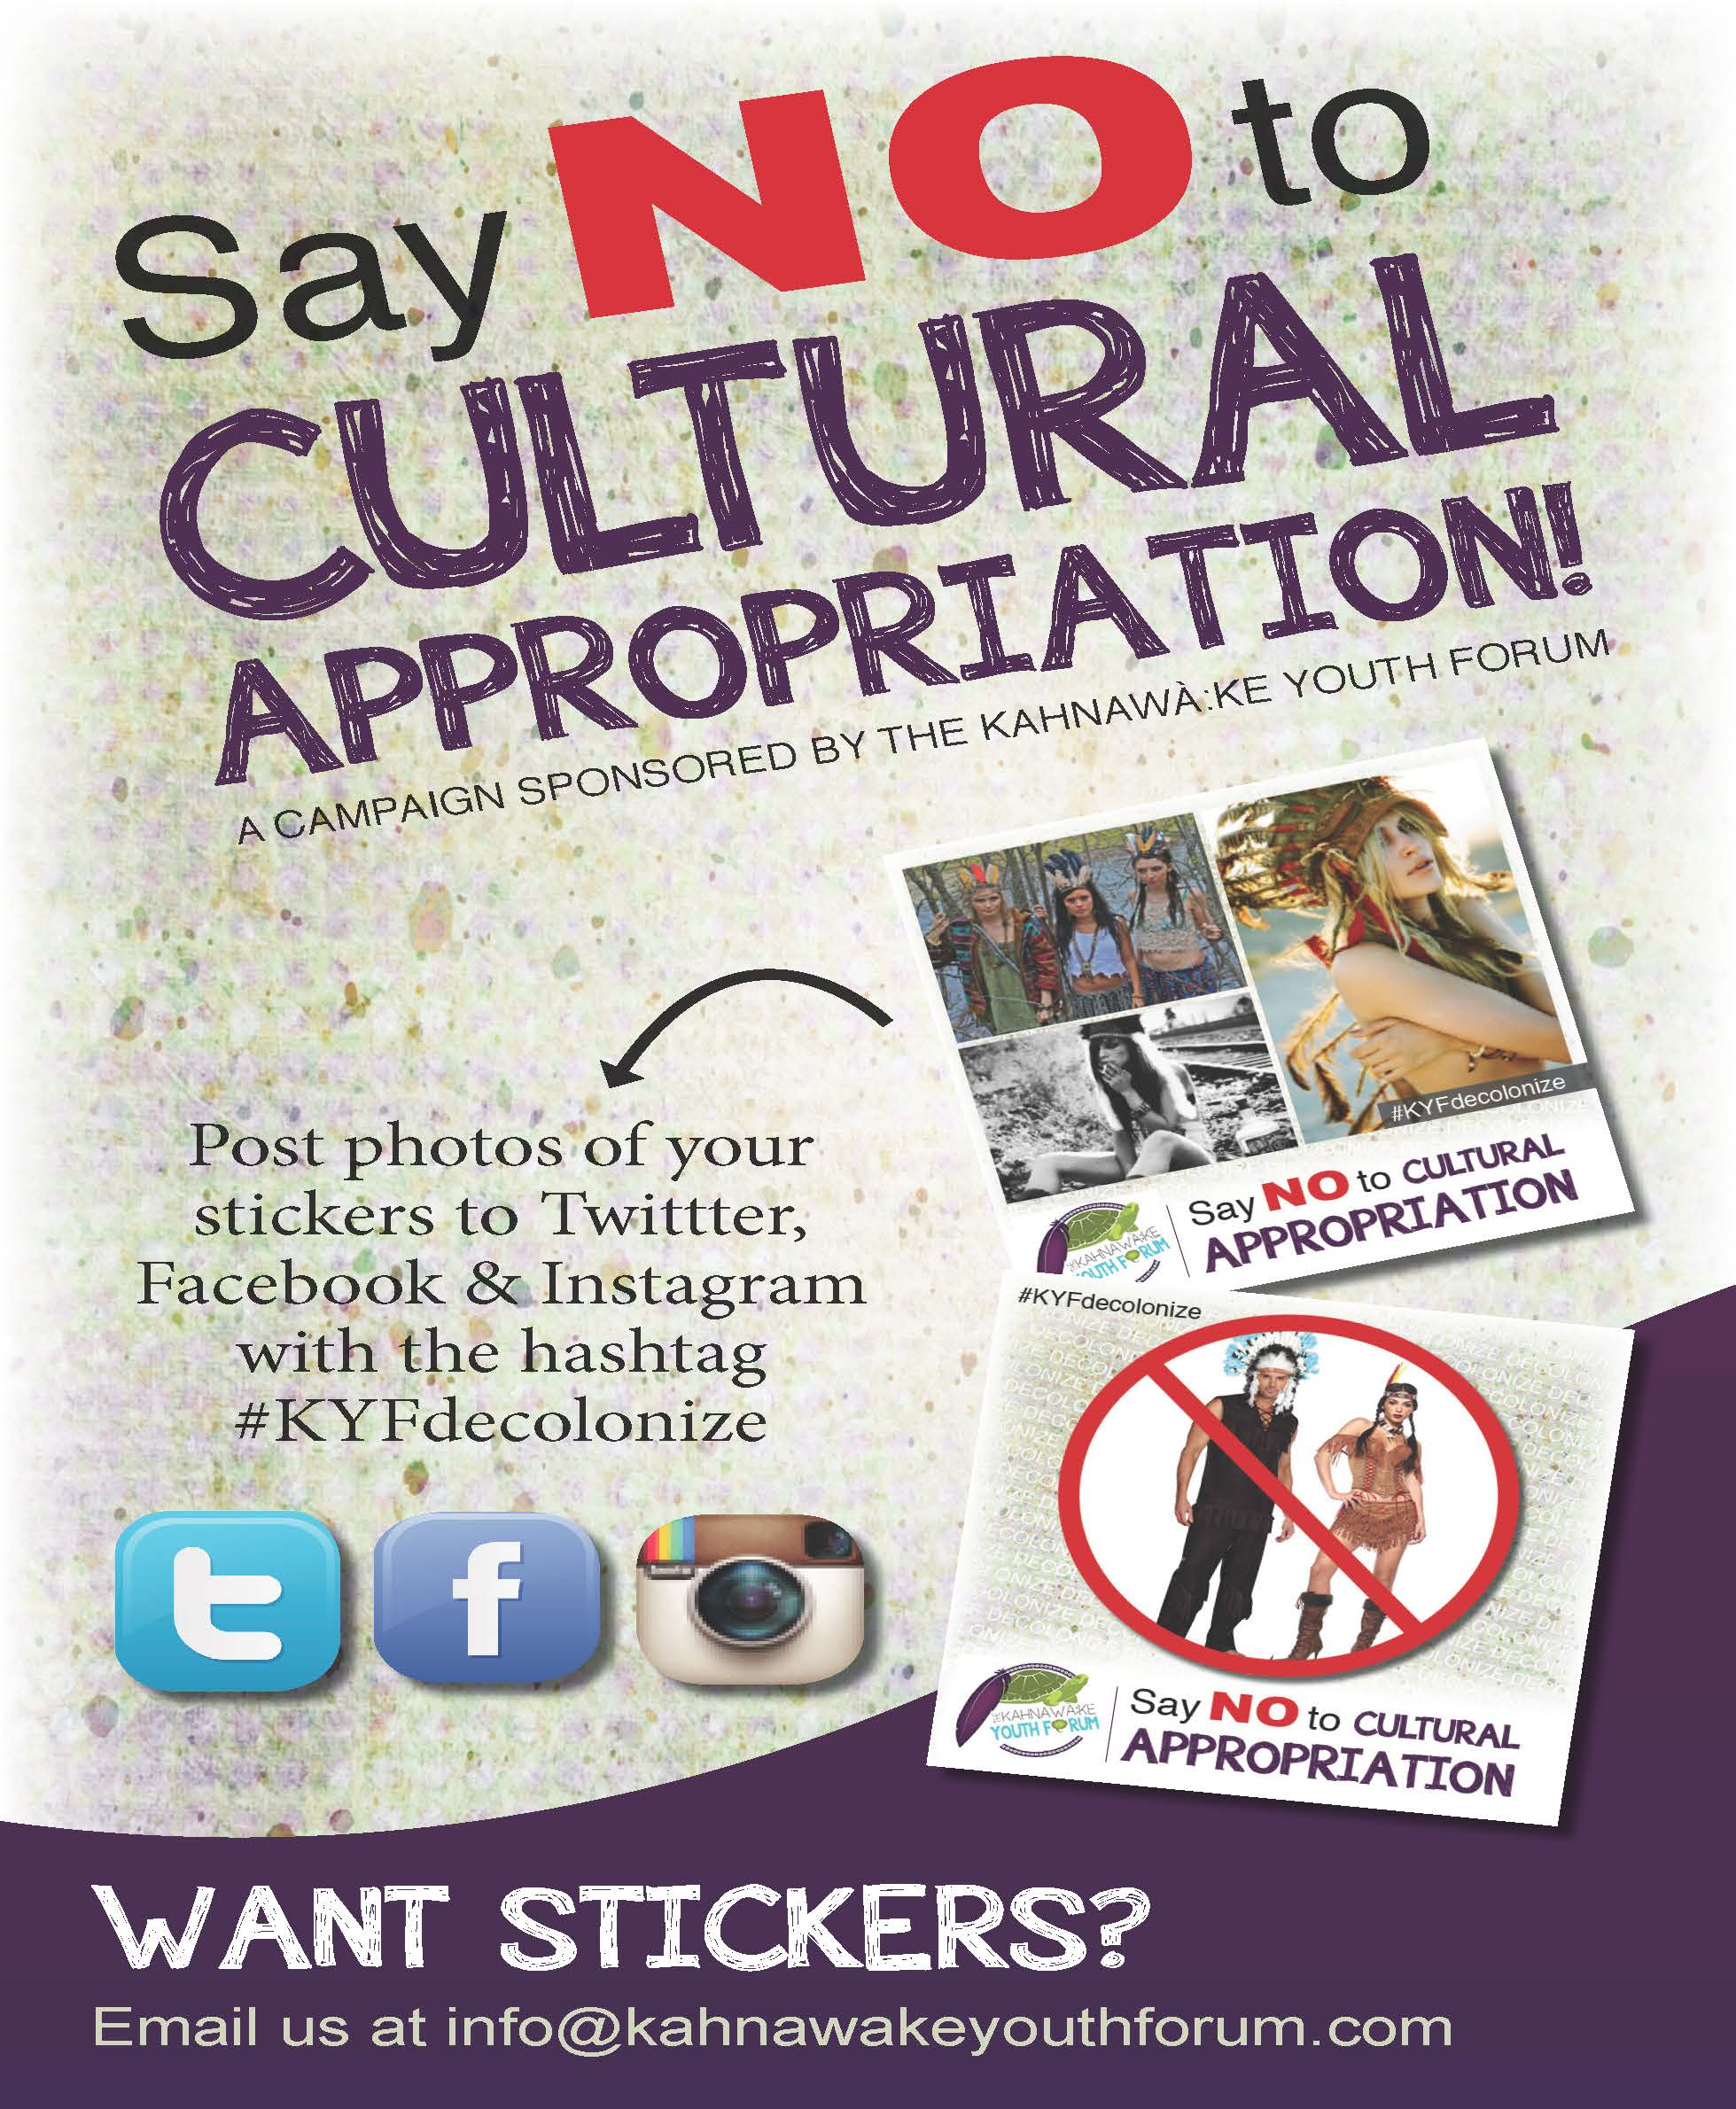 Download this The Say Cultural Appropriation Sticker Candaign picture